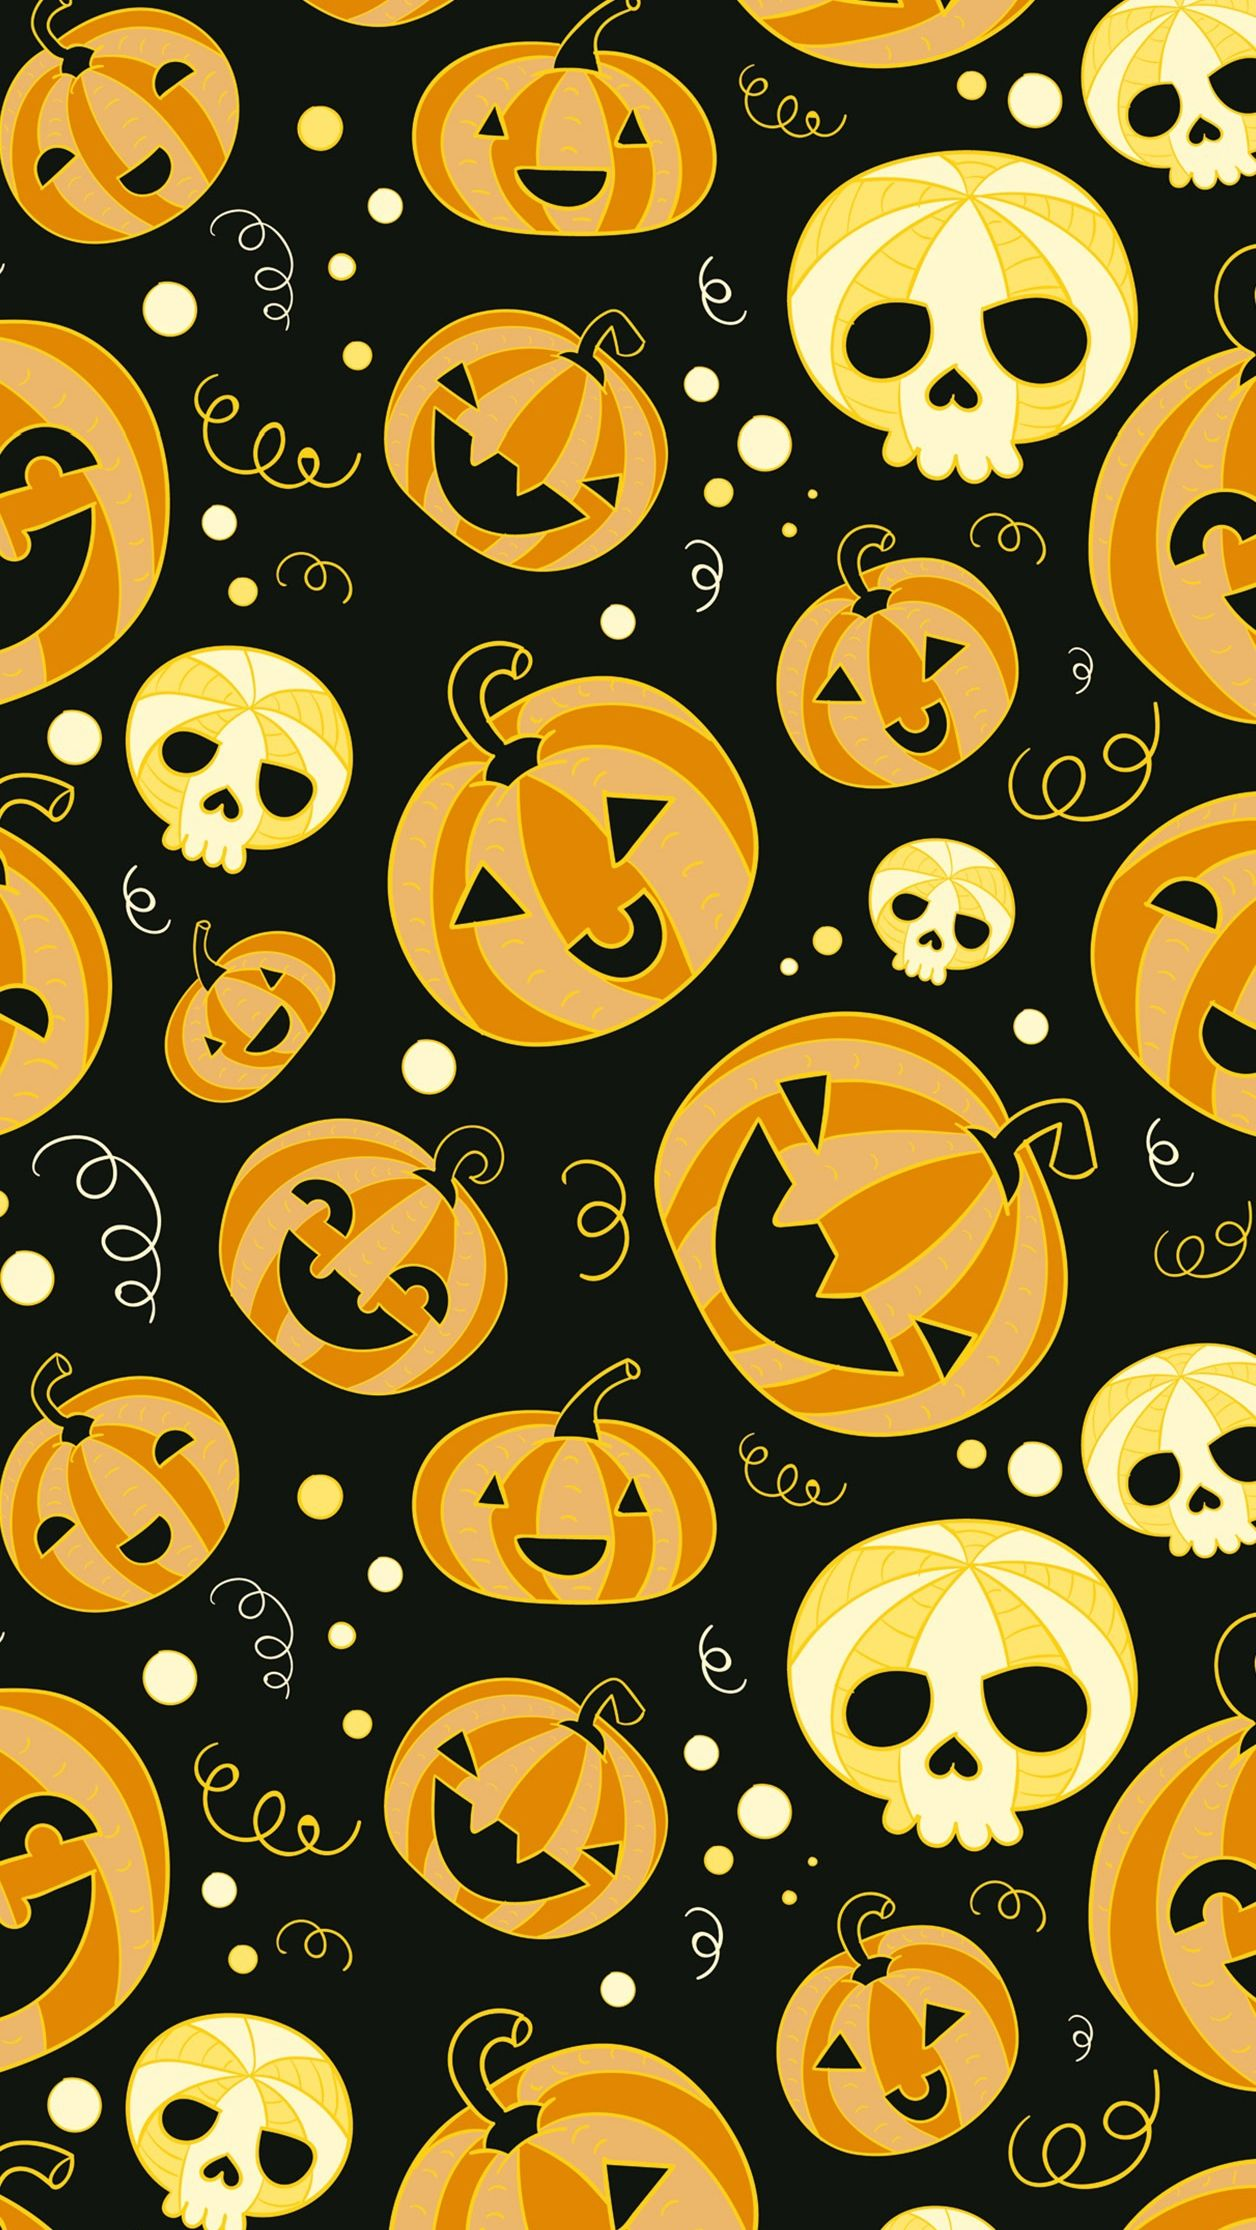 Halloween Funny Pumpkins Iphone Wallpaper ハロウィン壁紙